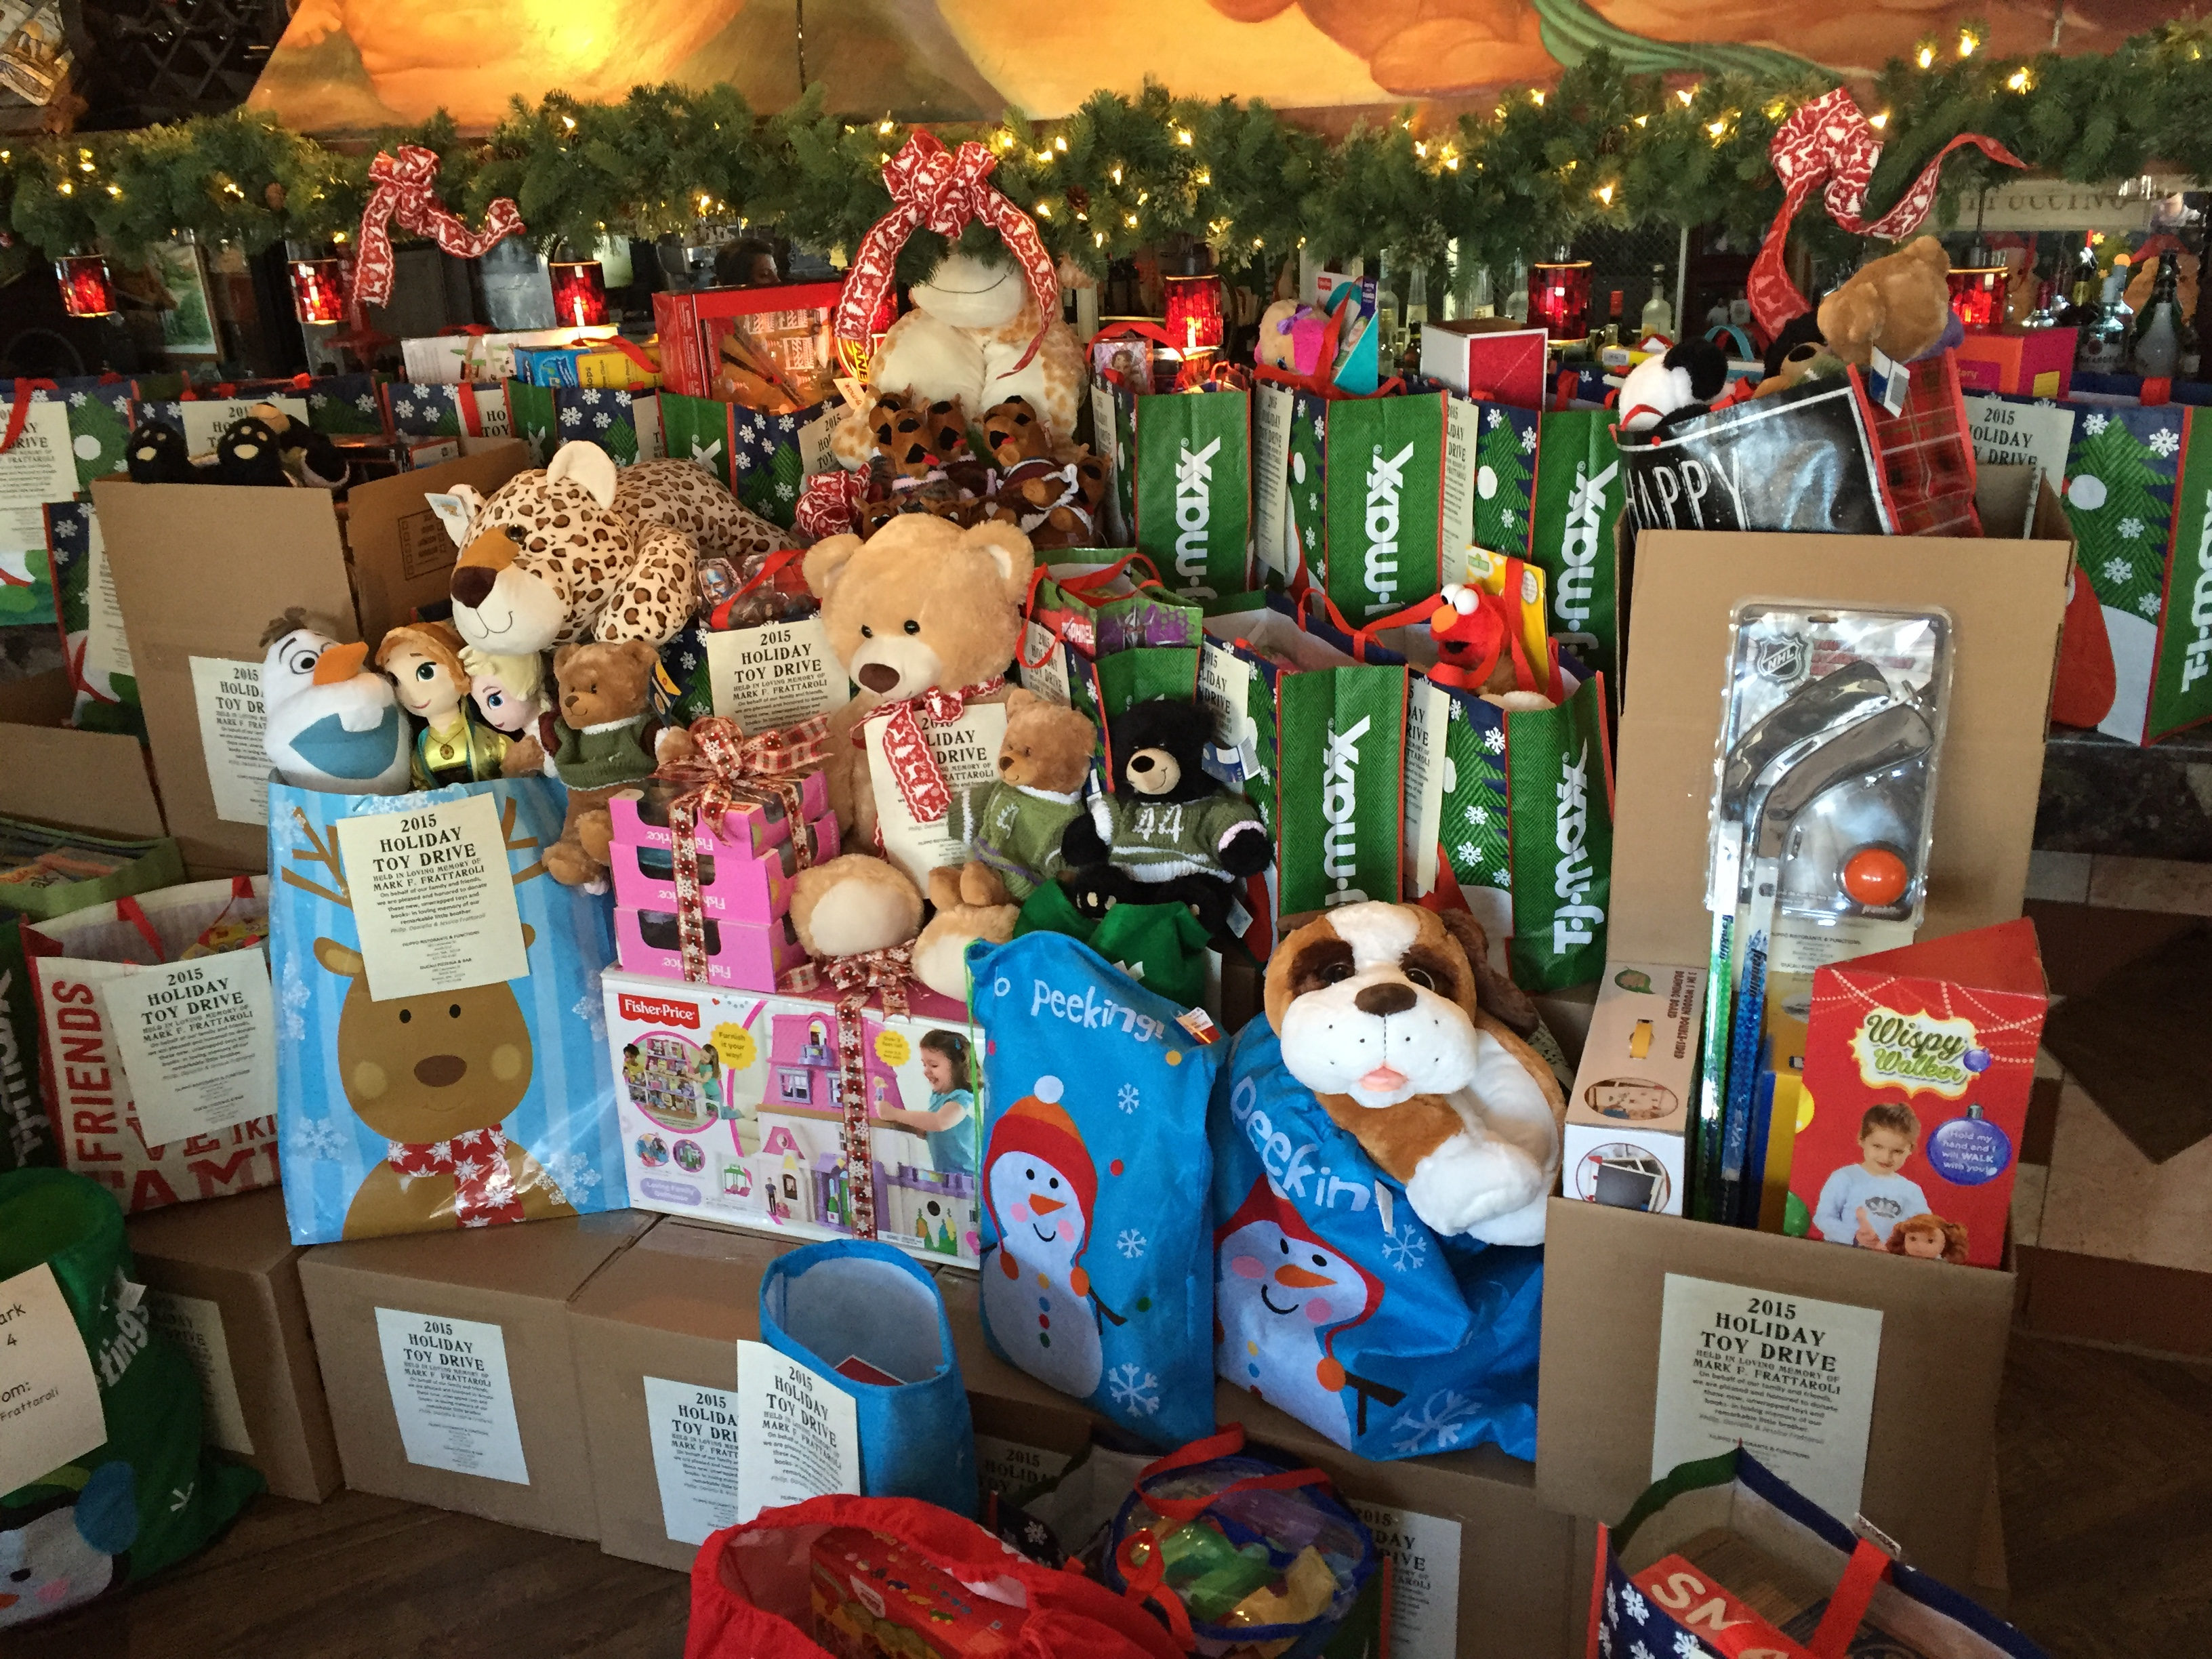 Over forty boxes of unwrapped toys for girls and boys aged 4-14.